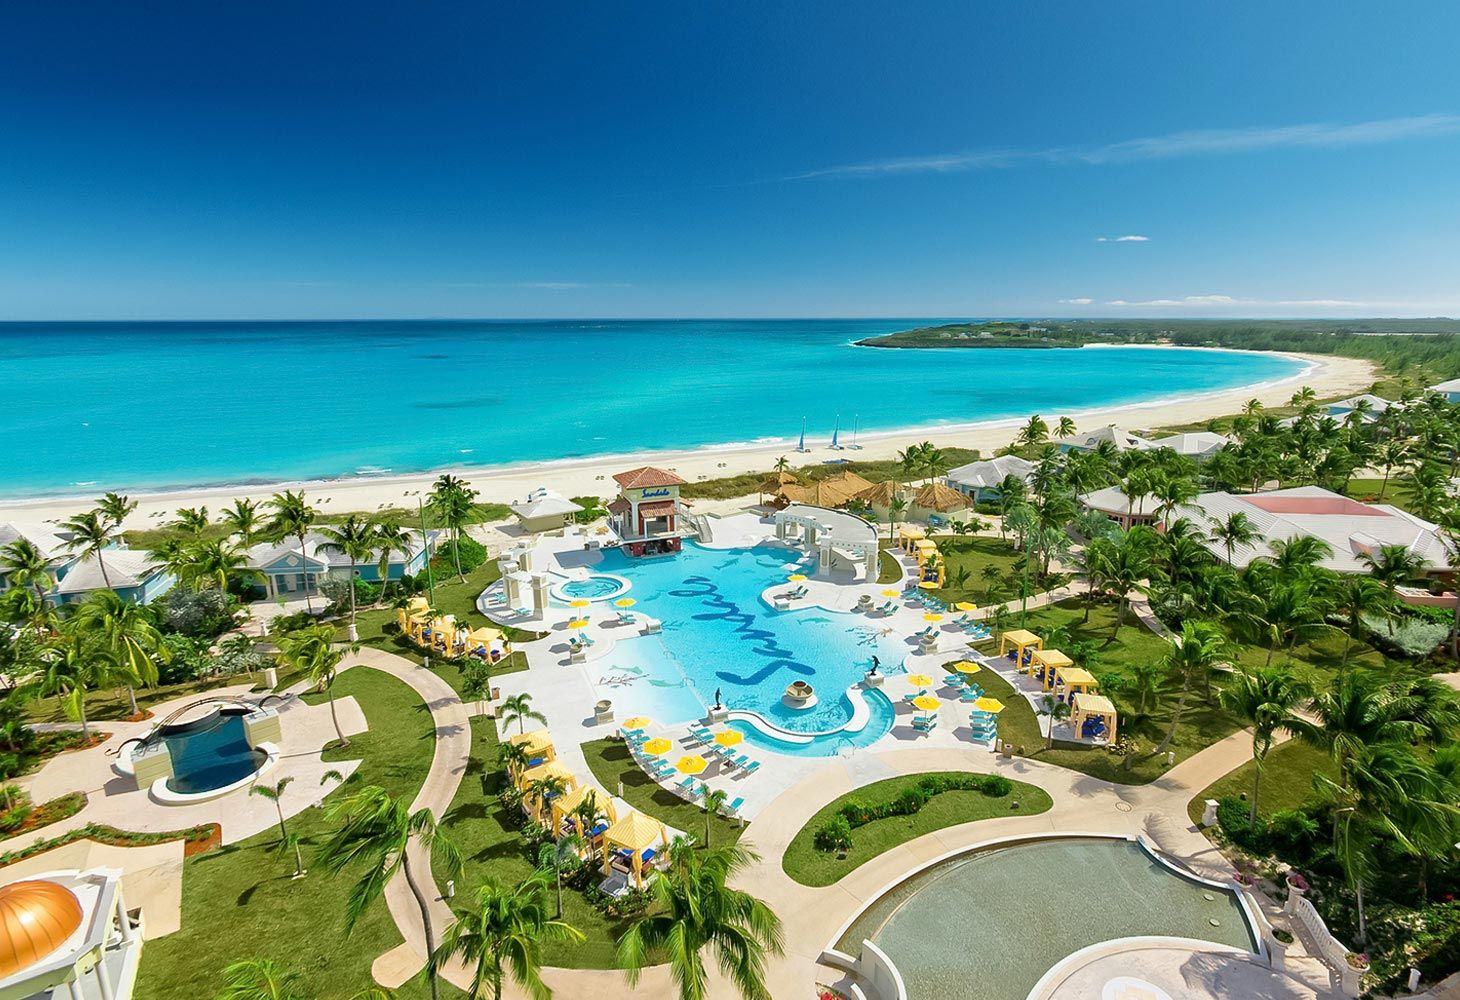 Sun, Sand & Relaxation Await At Sandals Emerald Bay